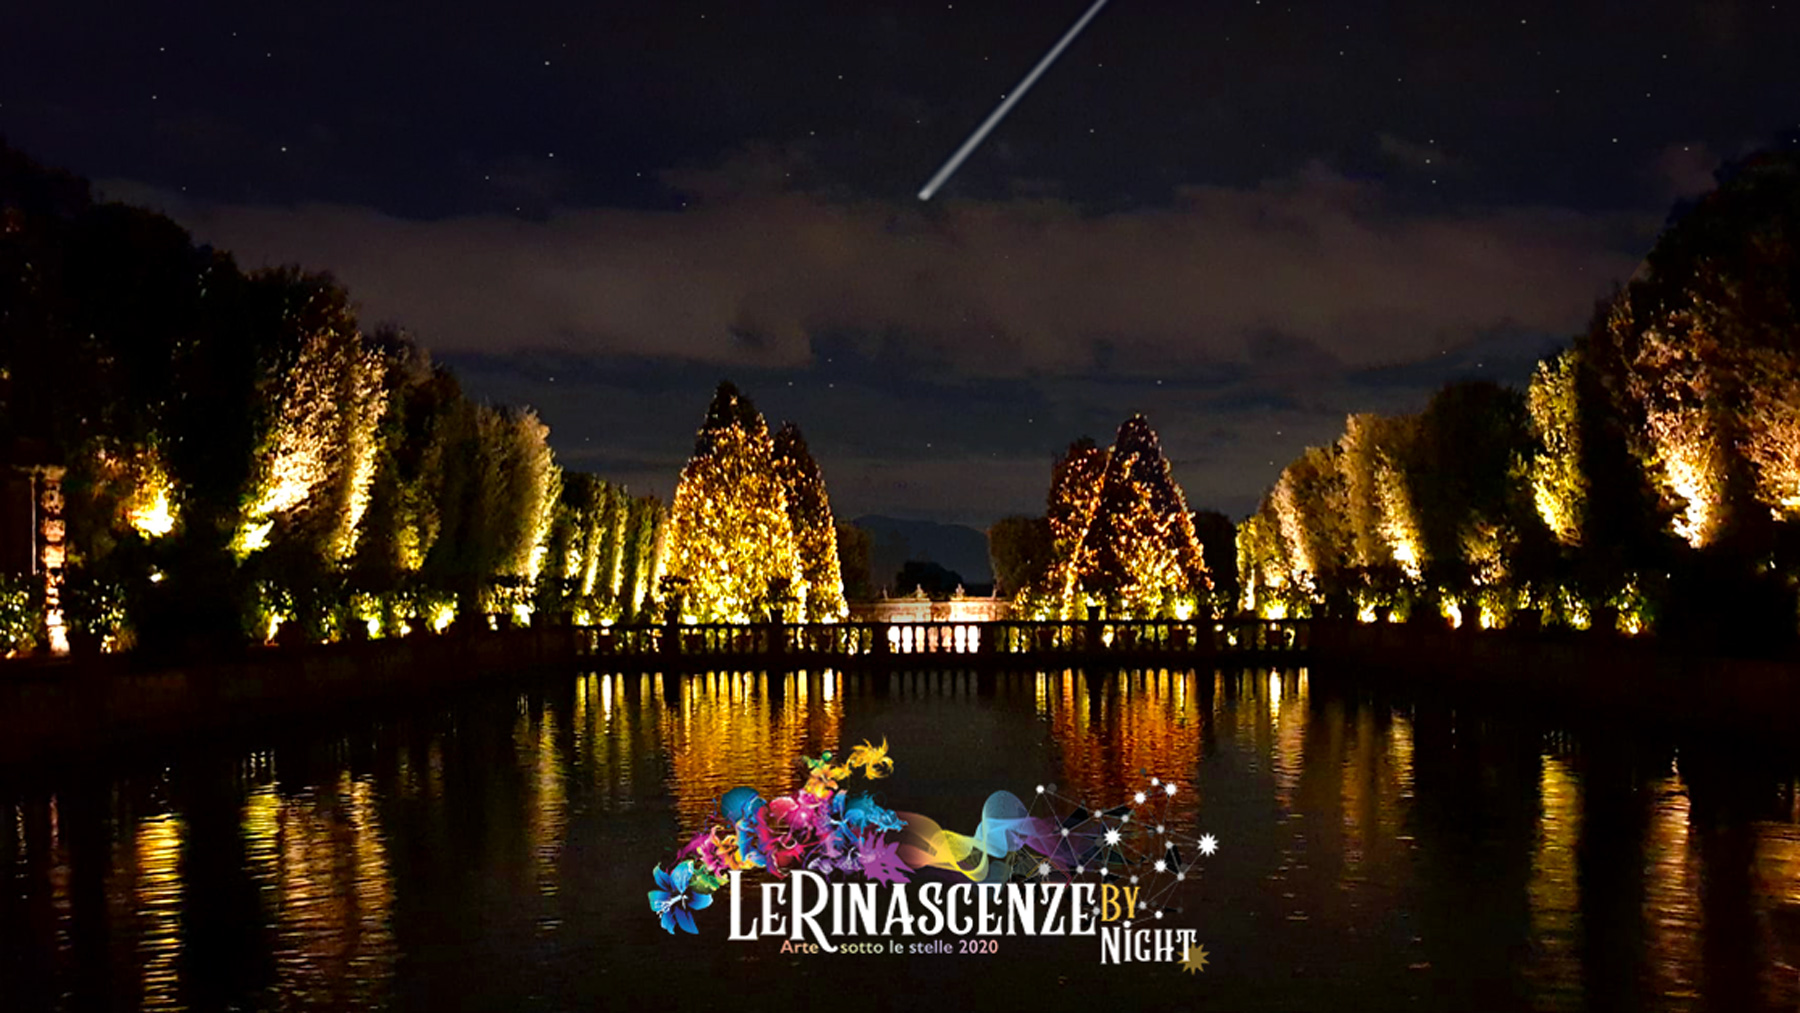 Le Rinascenze by Night Giardino dei Limoni